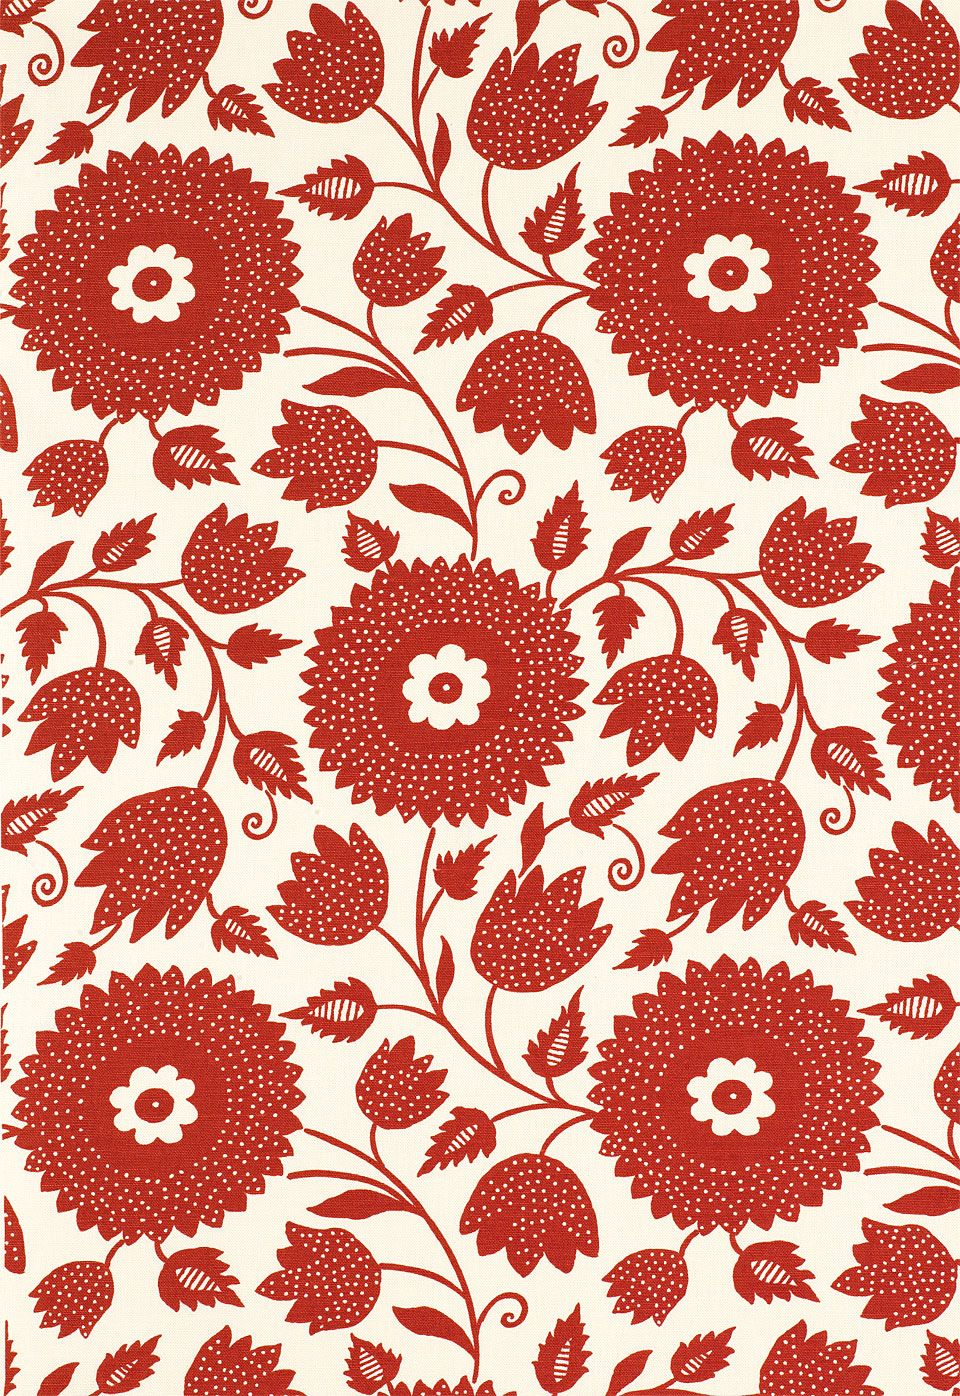 Reproduction fabric 1730s fabric colonial williamsburg reproduction fabric 1730s fabric colonial williamsburg collection griffin flower print in berry pattern fabricfabric sewingwoodblock jeuxipadfo Choice Image